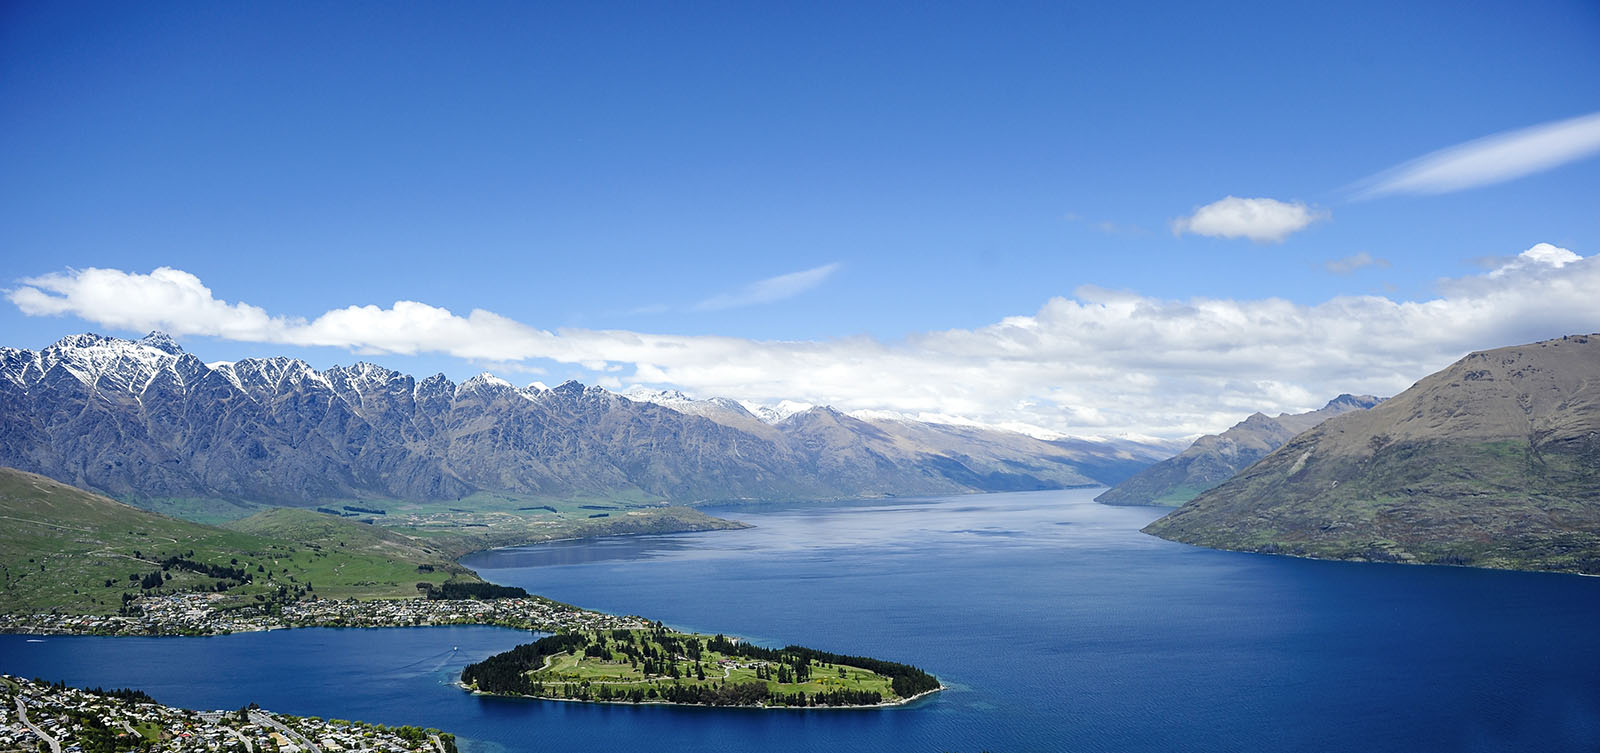 Laurier Du Vallon - - Queenstown and Lake Wakatipu